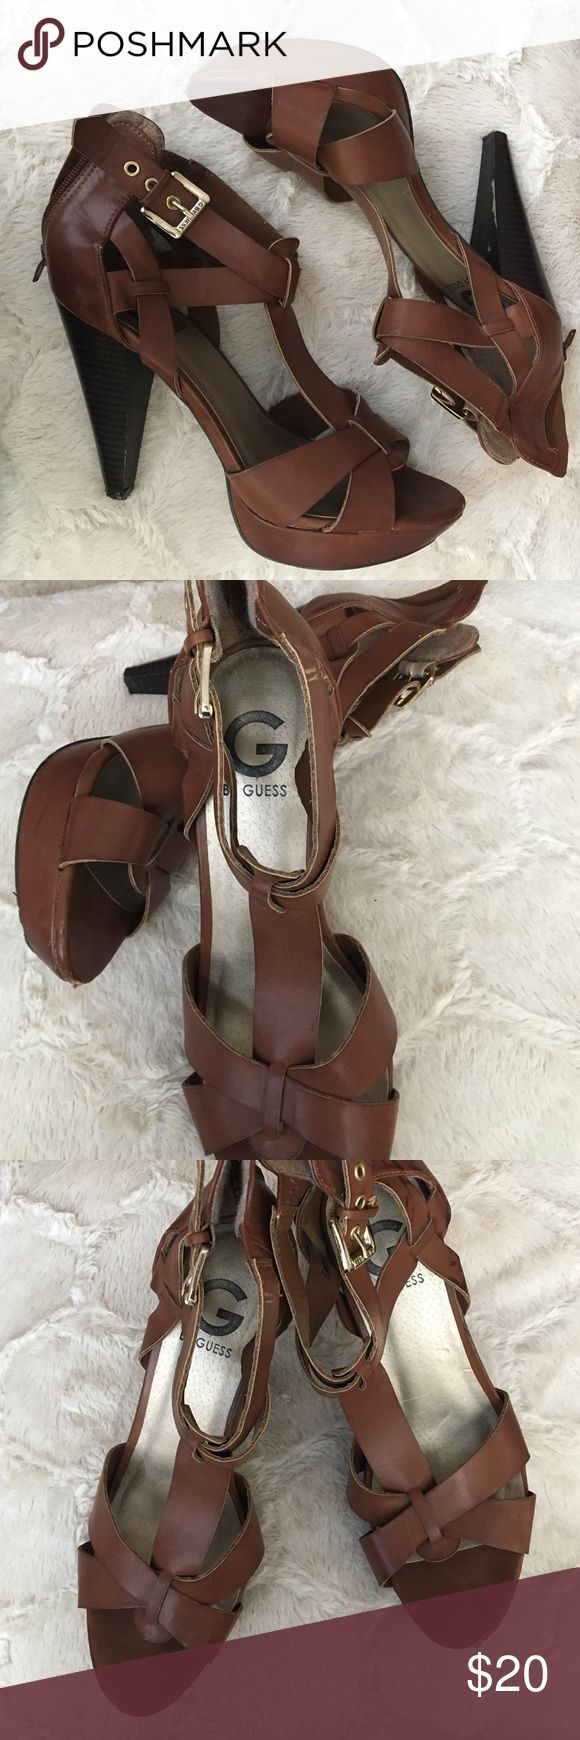 Strap up Guess heels Brown strap up Guess heels. Make your offer! ❤️ G by Guess Shoes Heels